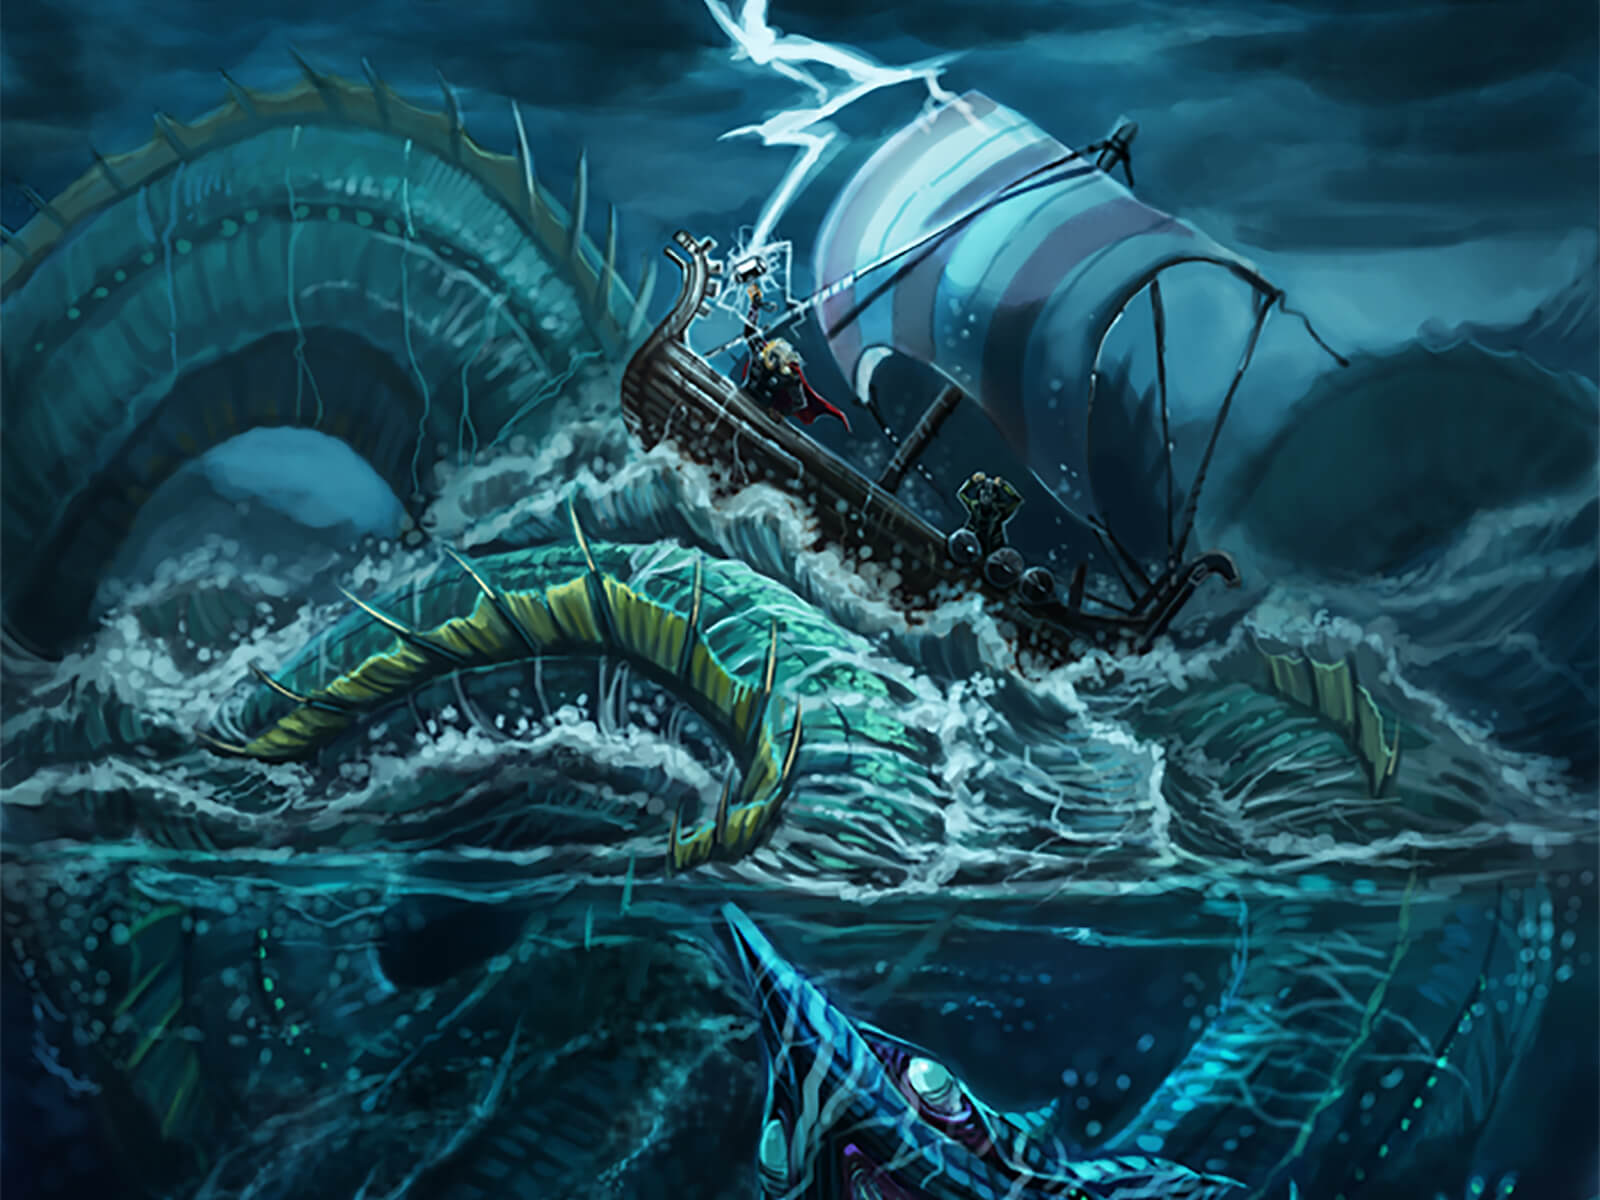 A occupant aboard a viking-style ship is struck by lightning as he is raised above the waves by a massive sea monster below.